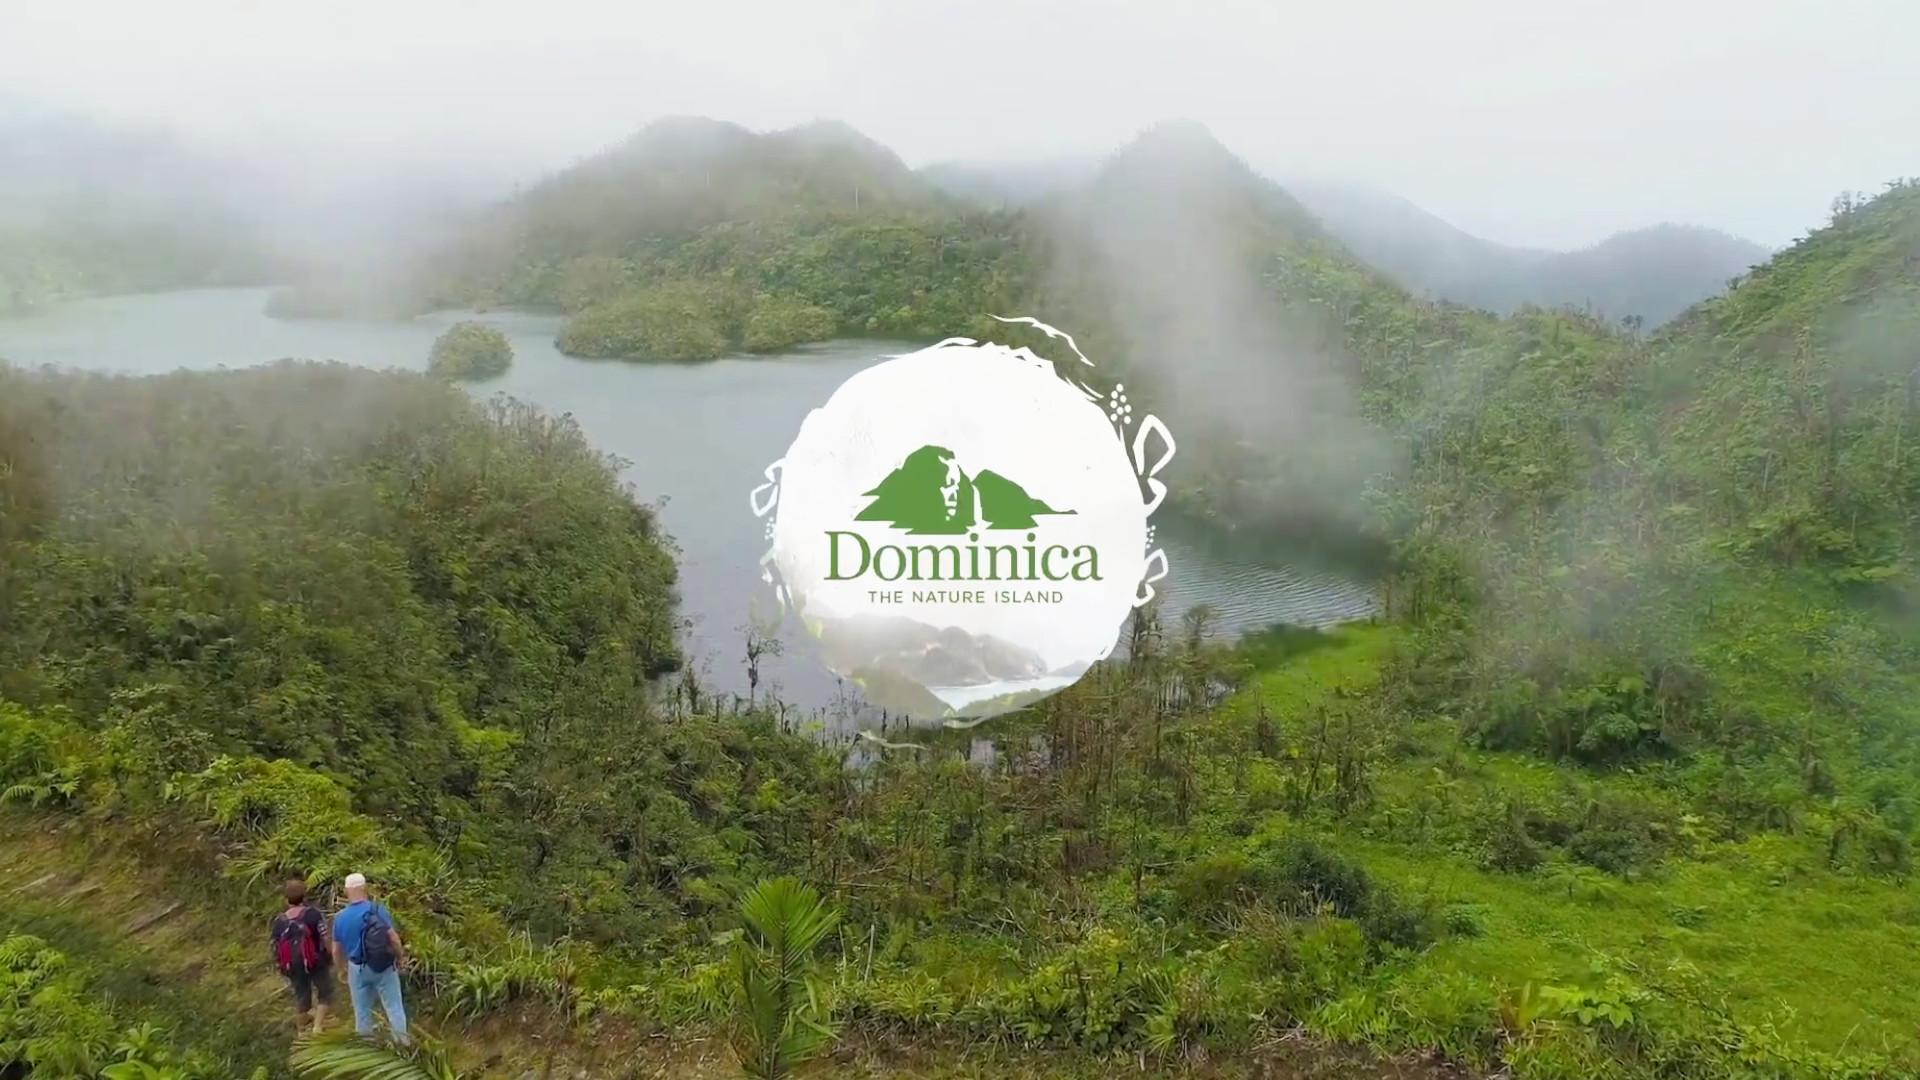 In Our Nature, Tourism Marketing Campaign of Dominica